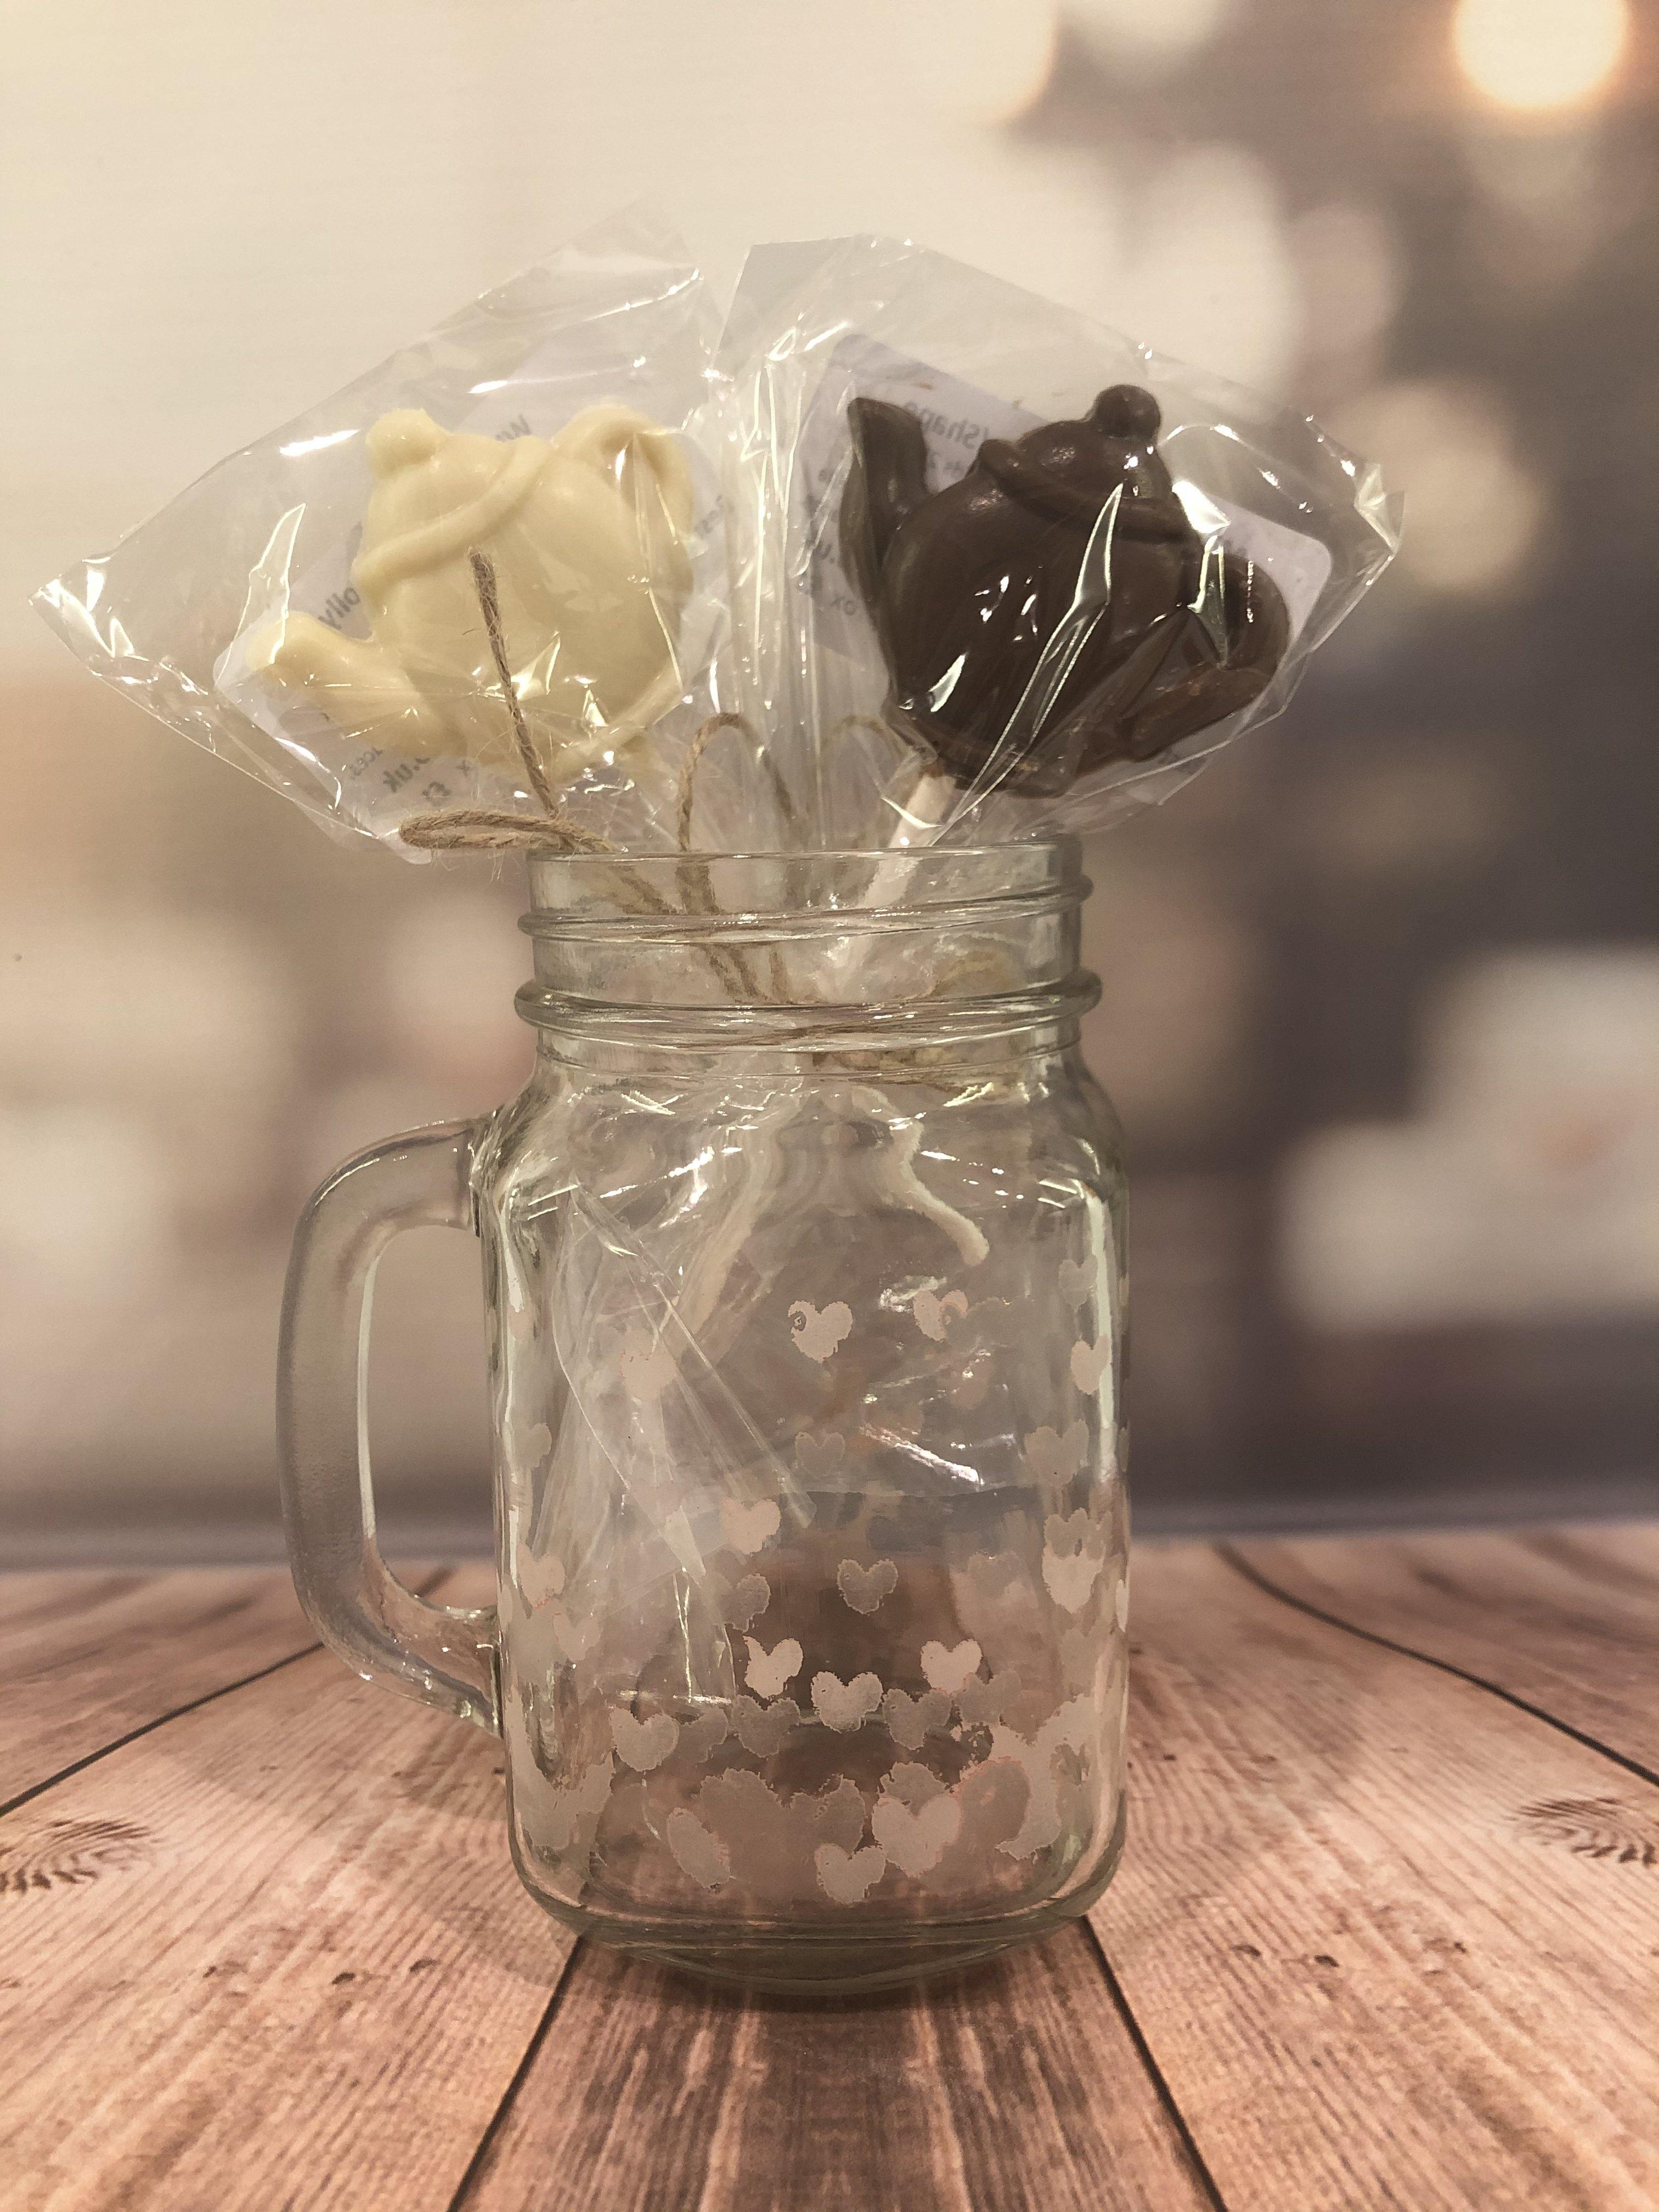 Little Chocolate Teapot Lollipop - The Little Chocolate Teapot Company